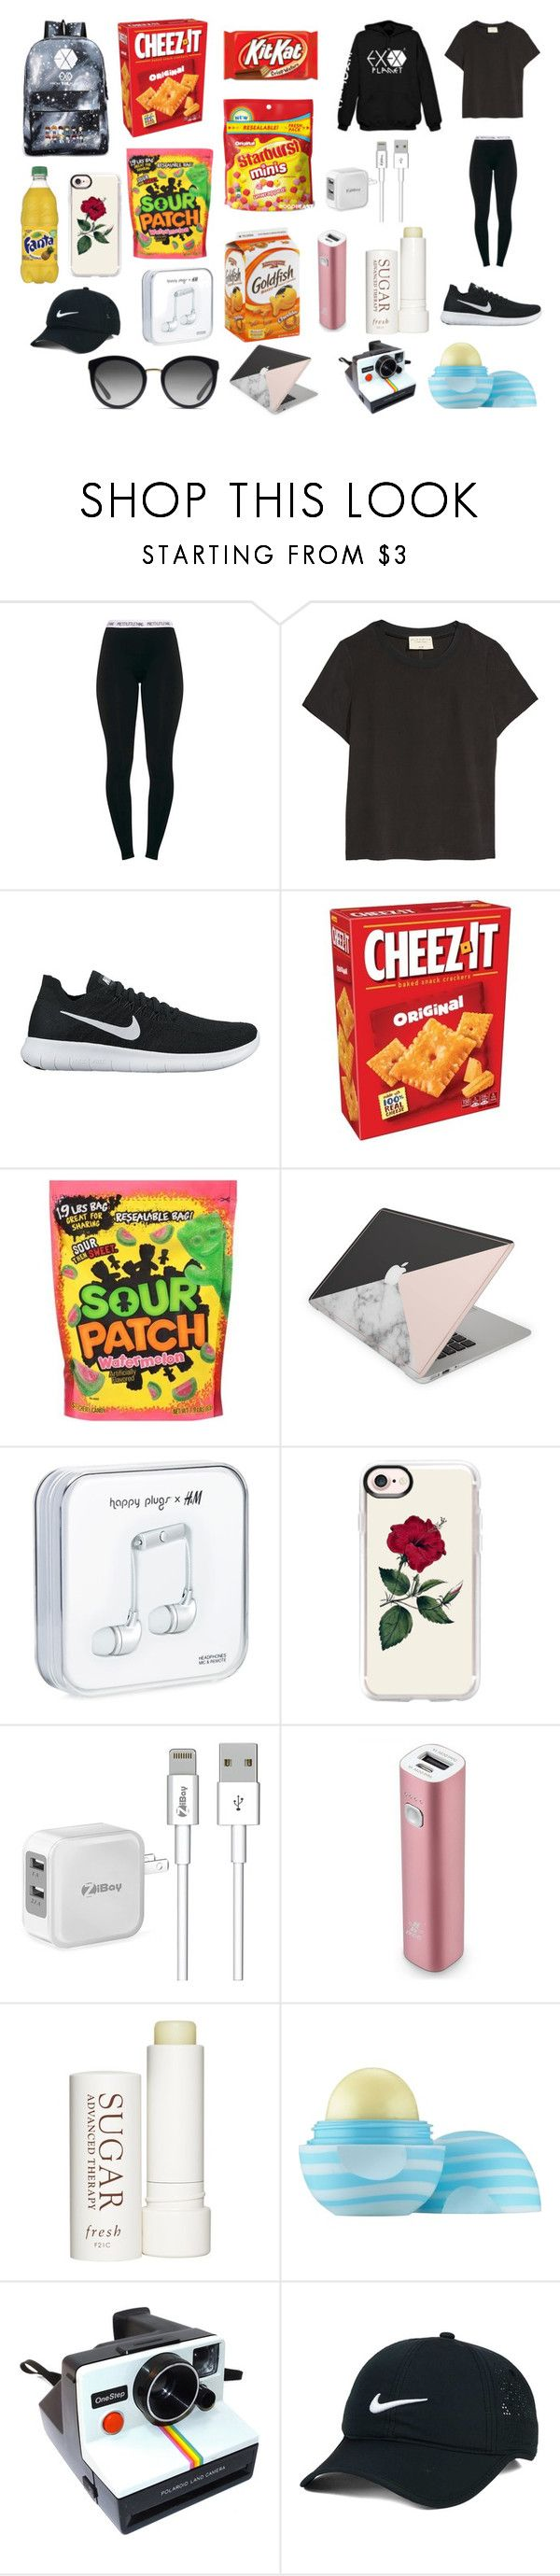 """EXO Dance Practice Outfit"" by thatonefangirl224 on Polyvore featuring NIKE, Casetify, Samsung, Therapy, Eos, Polaroid and Dolce&Gabbana"